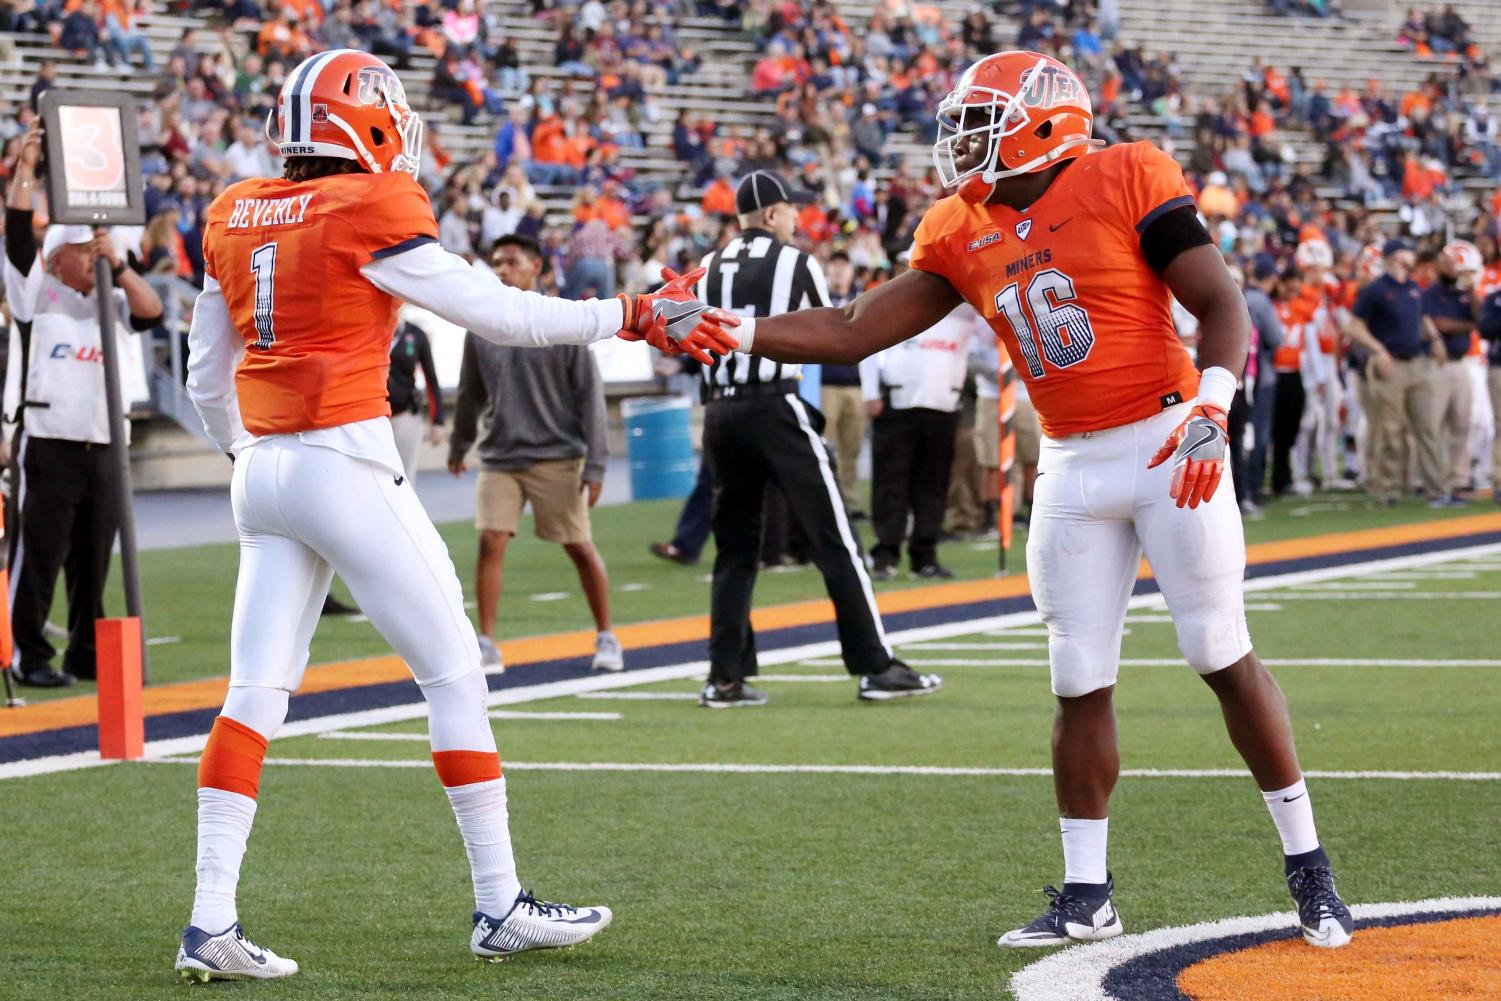 The UTEP football team is winless at 0-8 and sits last in the FBS in total offense.